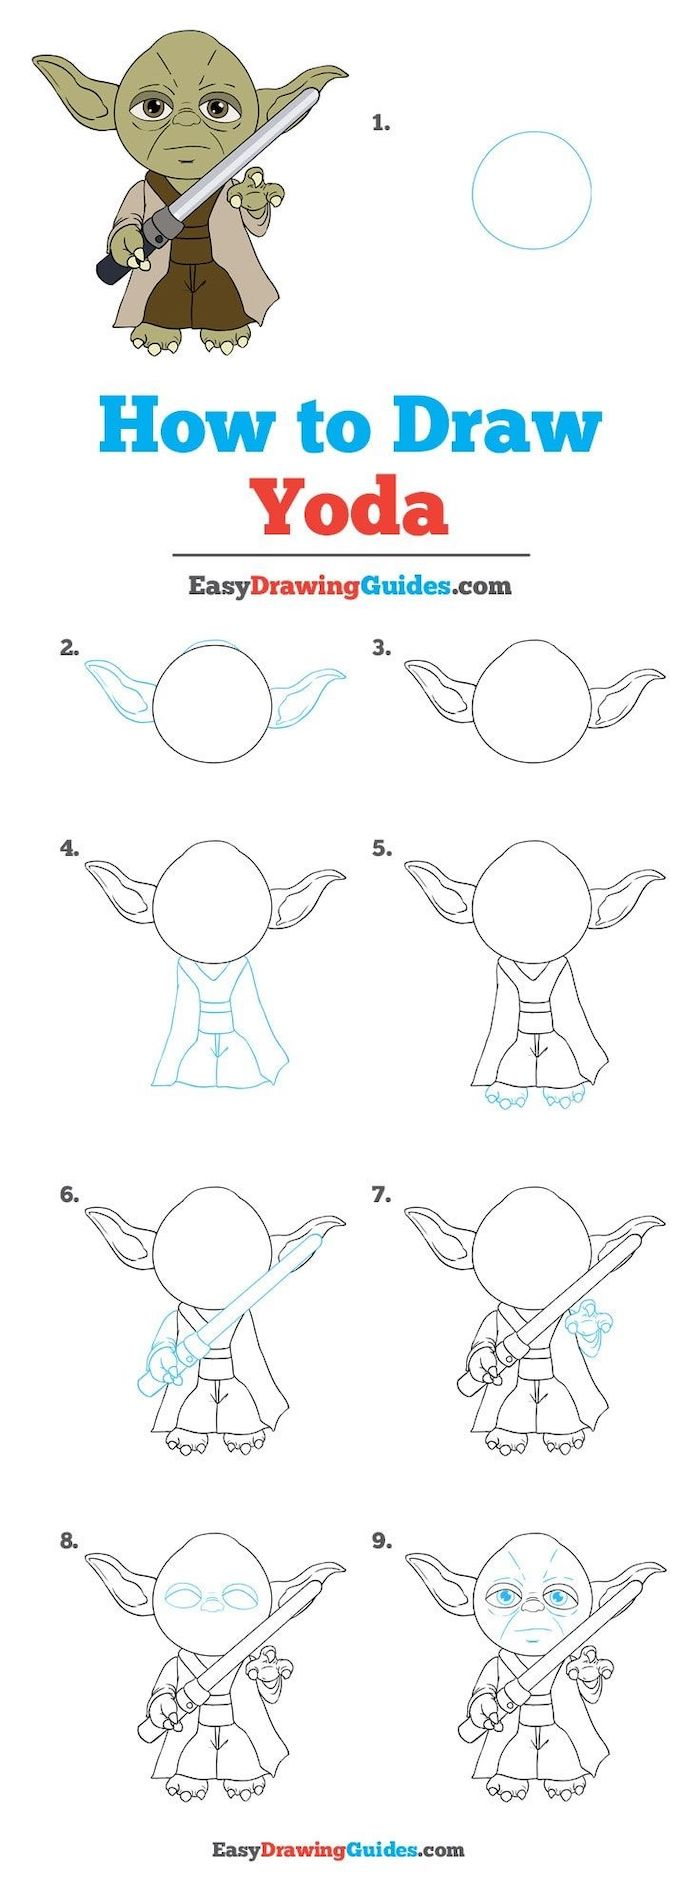 how to draw yoda in nine steps, easy drawings step by step, step by step diy tutorial, white background